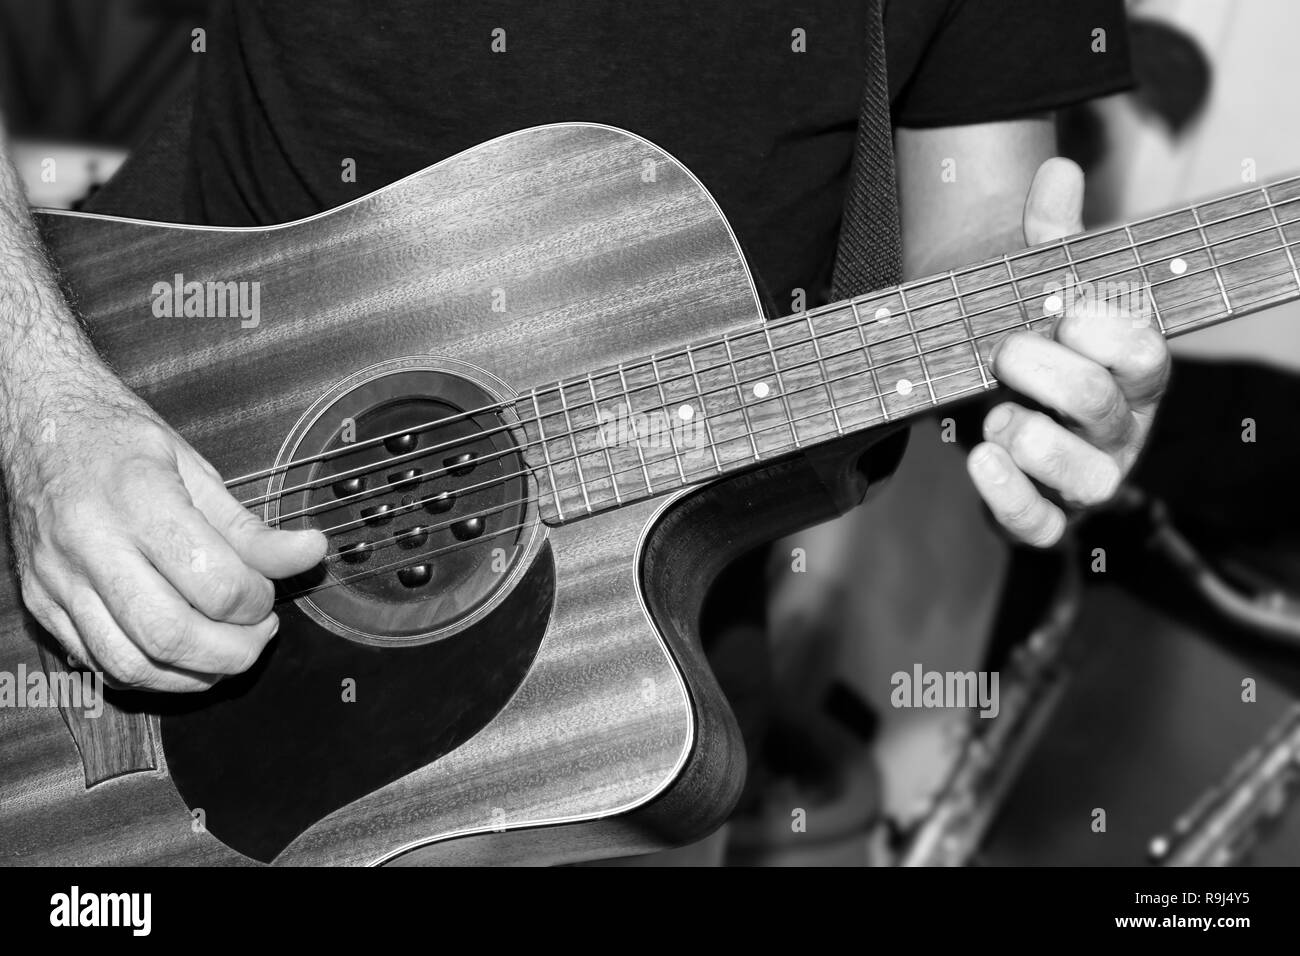 The guitarist plays a solo in the studio - Stock Image